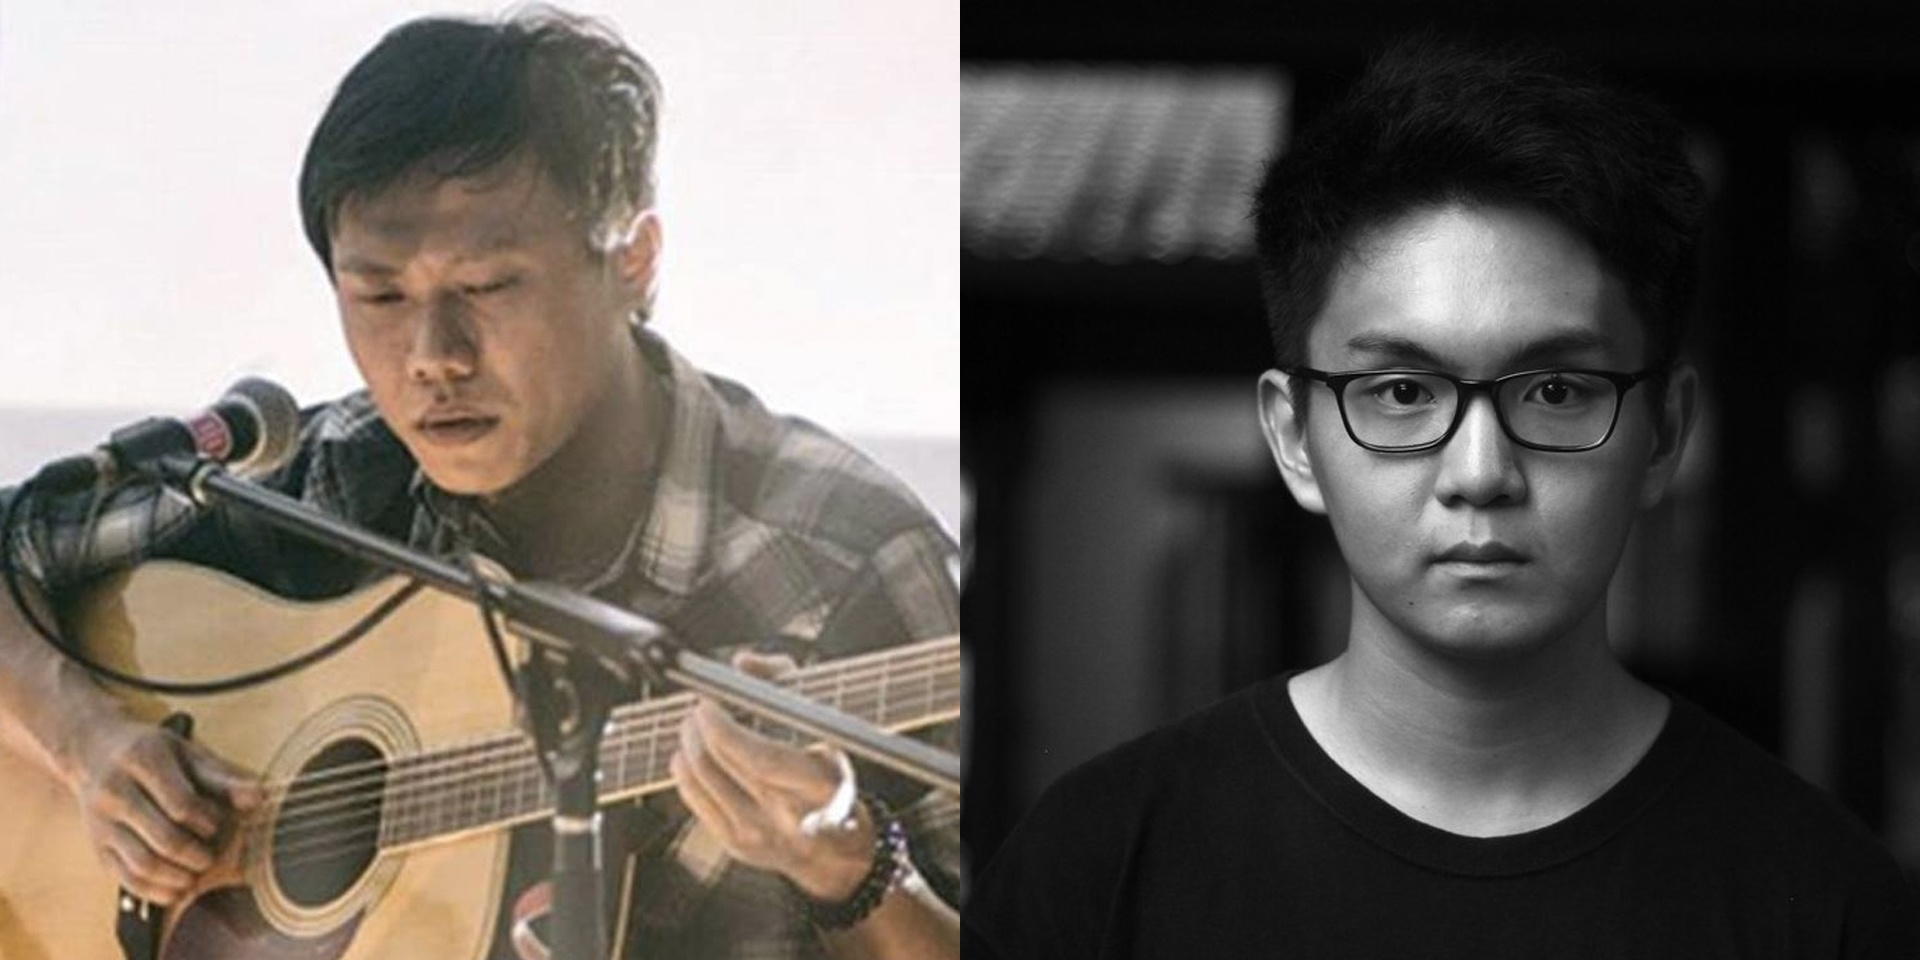 PIBLOKTO and Bennett Bay to release respective albums at Esplanade Recital Studio in January 2017